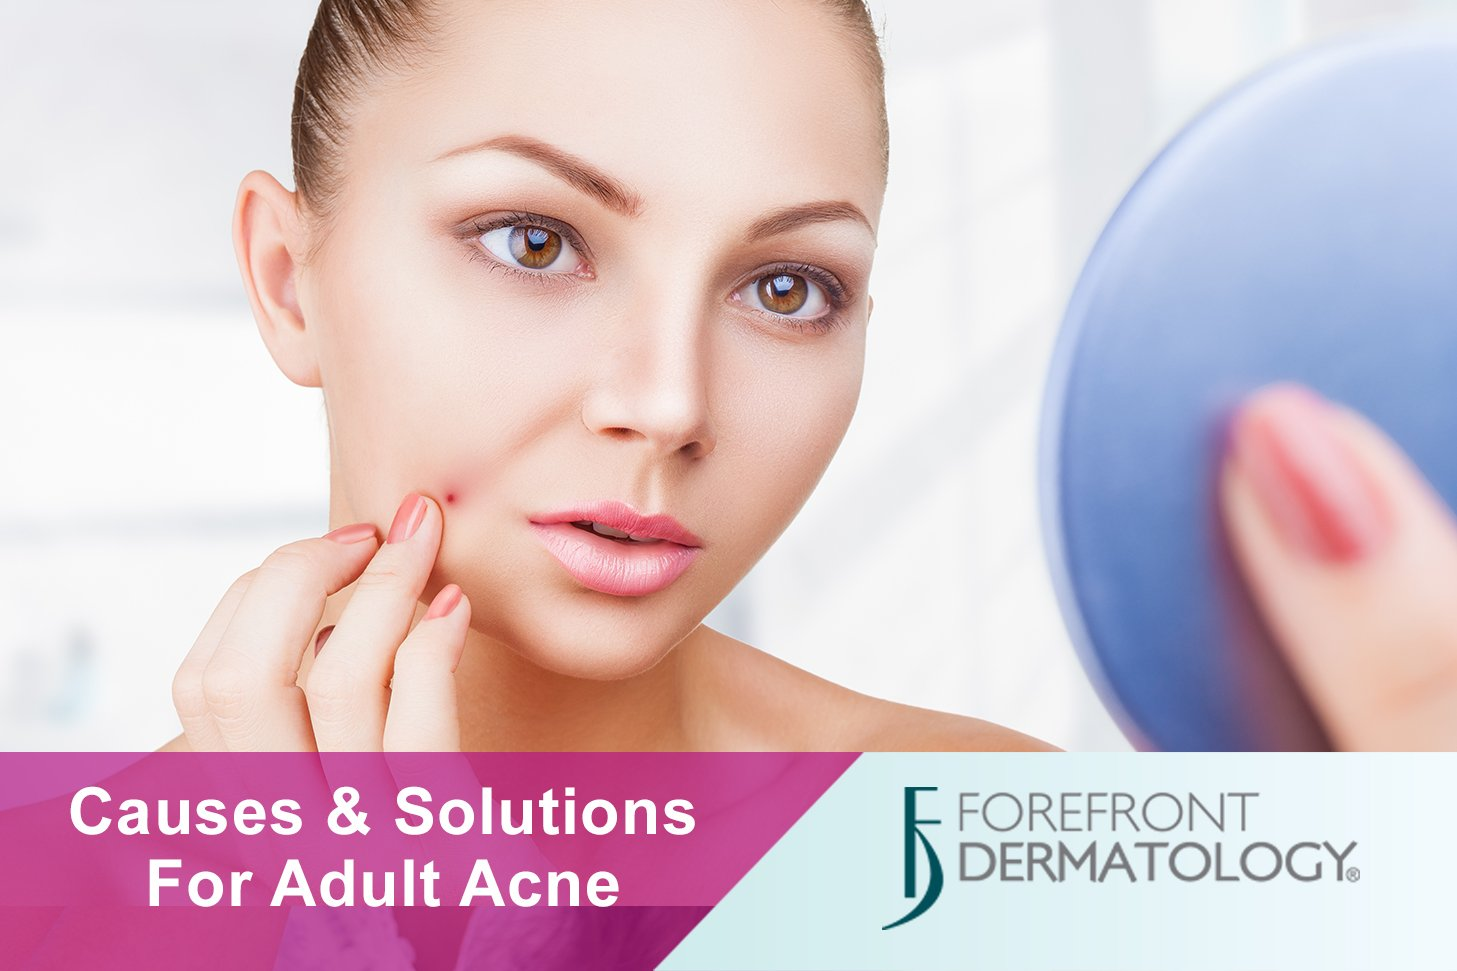 pics How to Avoid Adult Acne